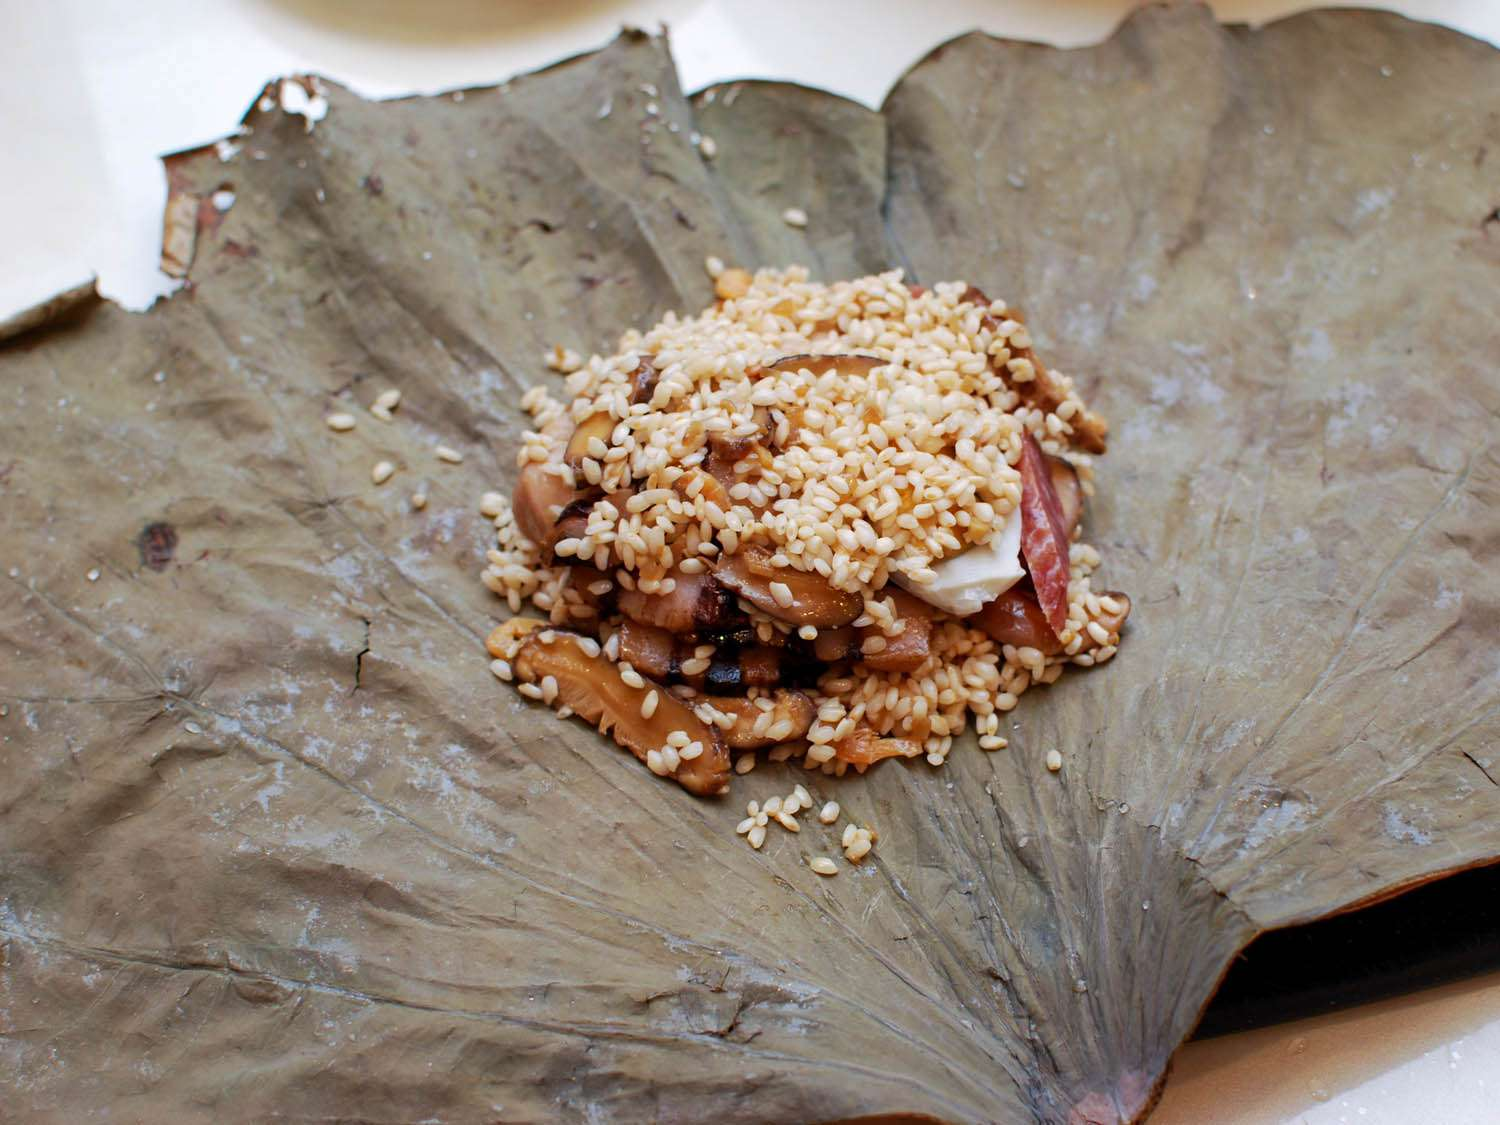 20150316-sticky-rice-with-lotus-leaf-shao-zhong-13.jpg